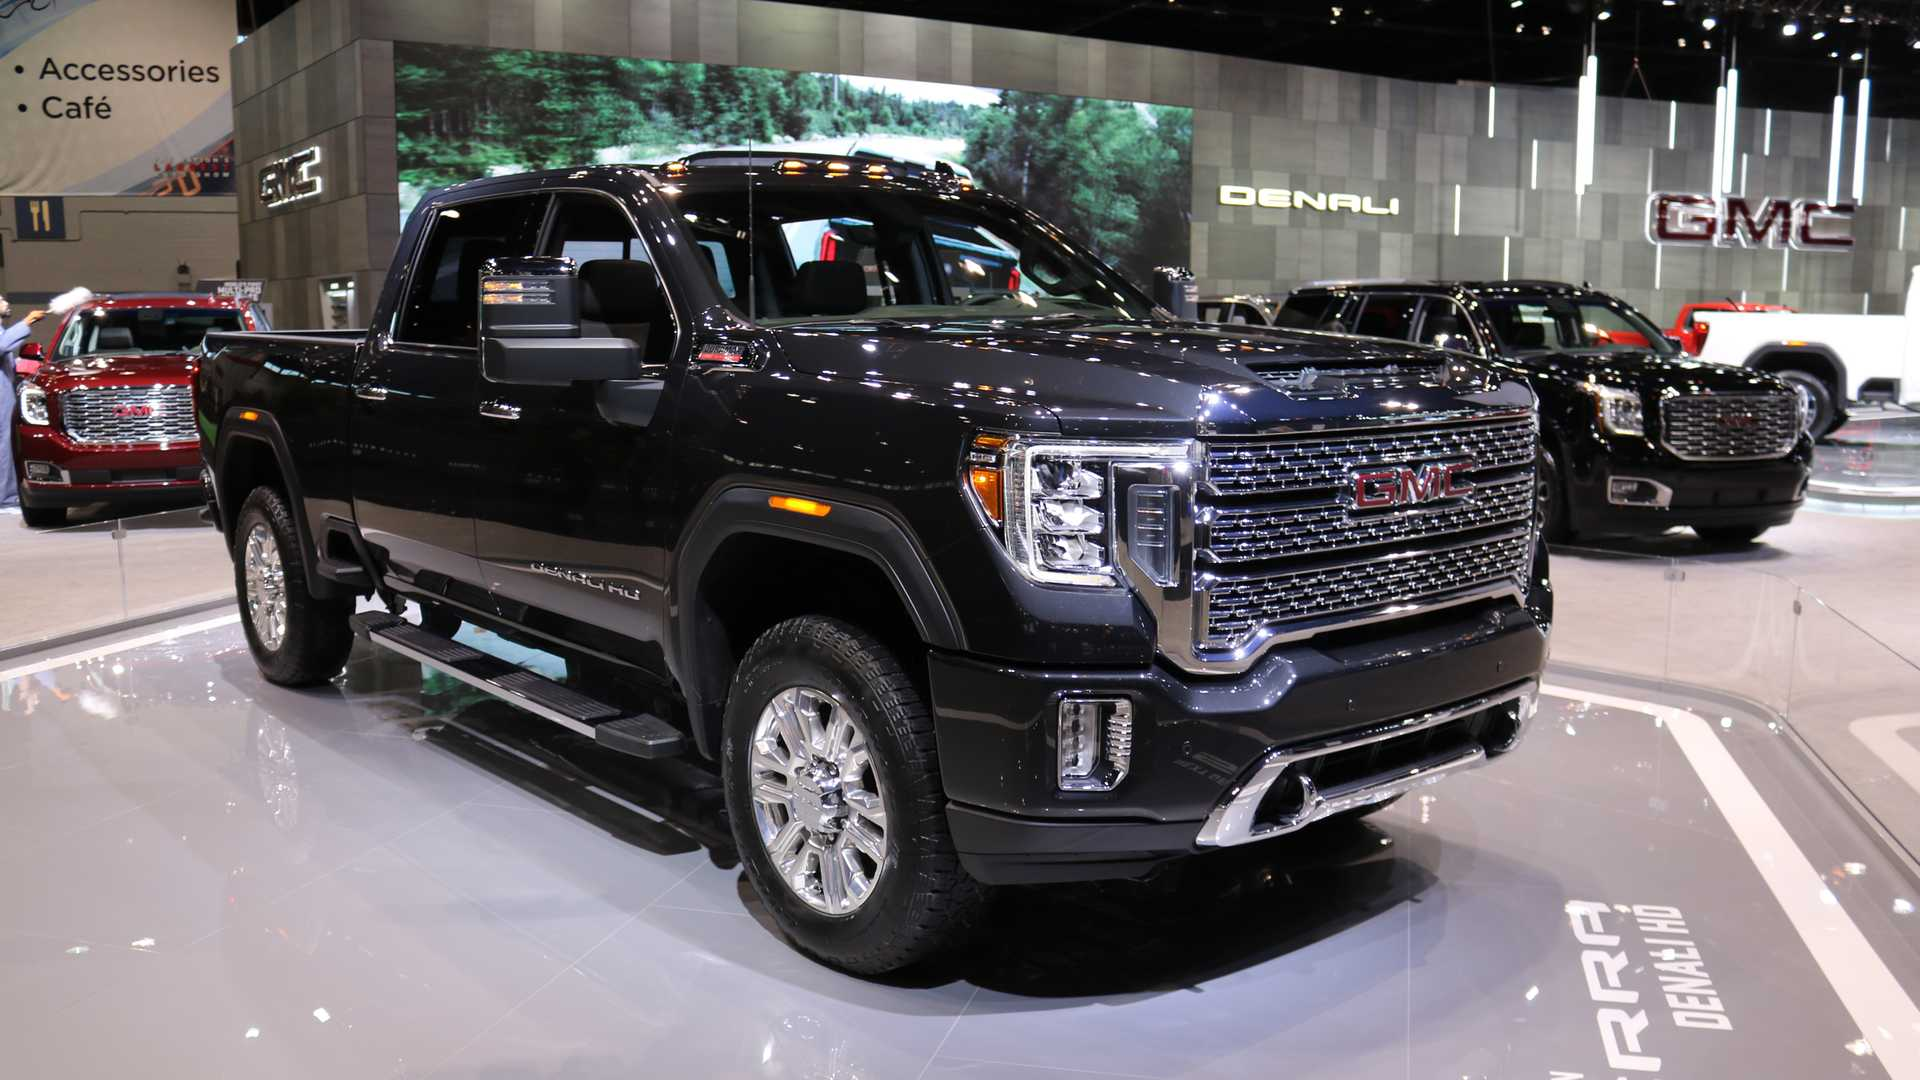 40 Concept of 2020 Gmc 2500 Release Date Price and Review by 2020 Gmc 2500 Release Date